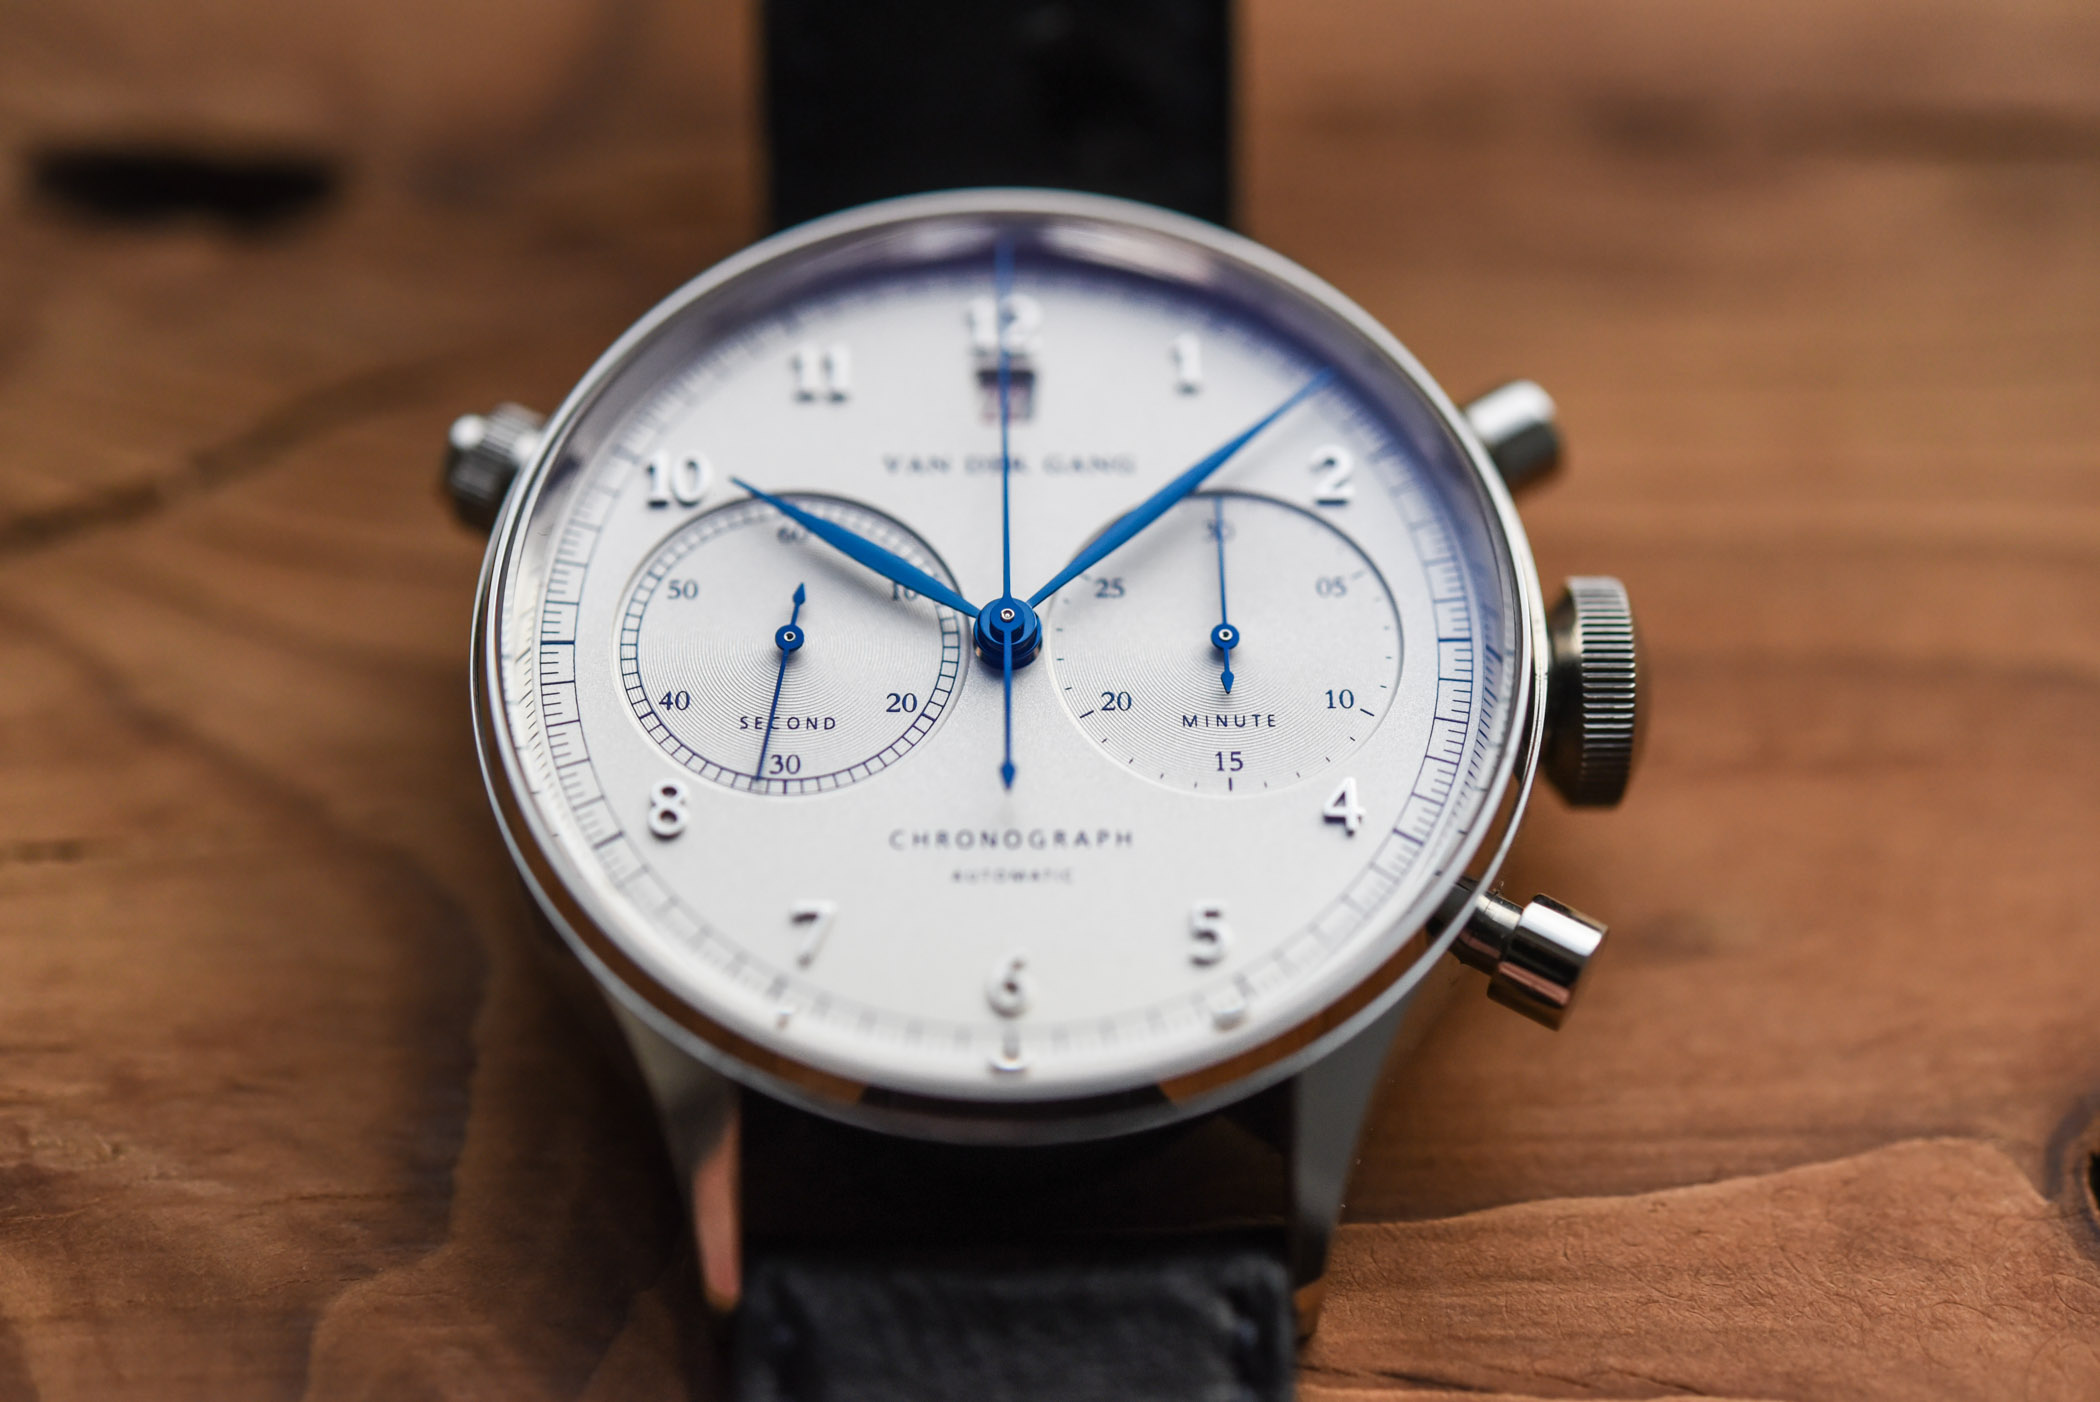 Van der Gang 20019 Chronograph - review - 11